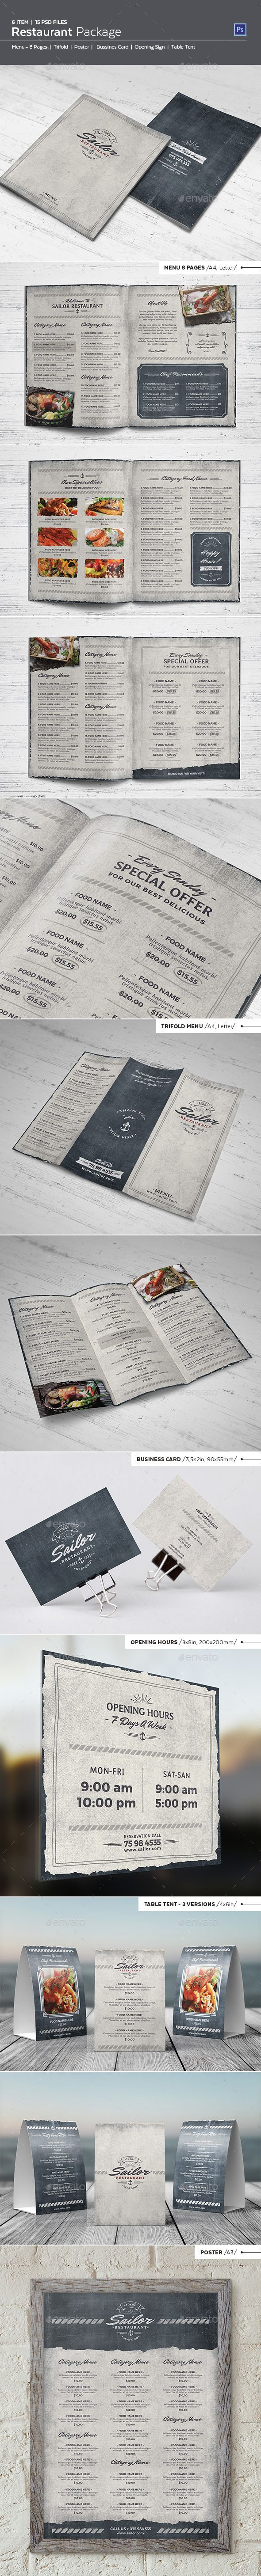 Sailor Restaurant Package Menu PSD Template #design Download: http://graphicriver.net/item/sailor-restaurant-package/13046237?ref=ksioks